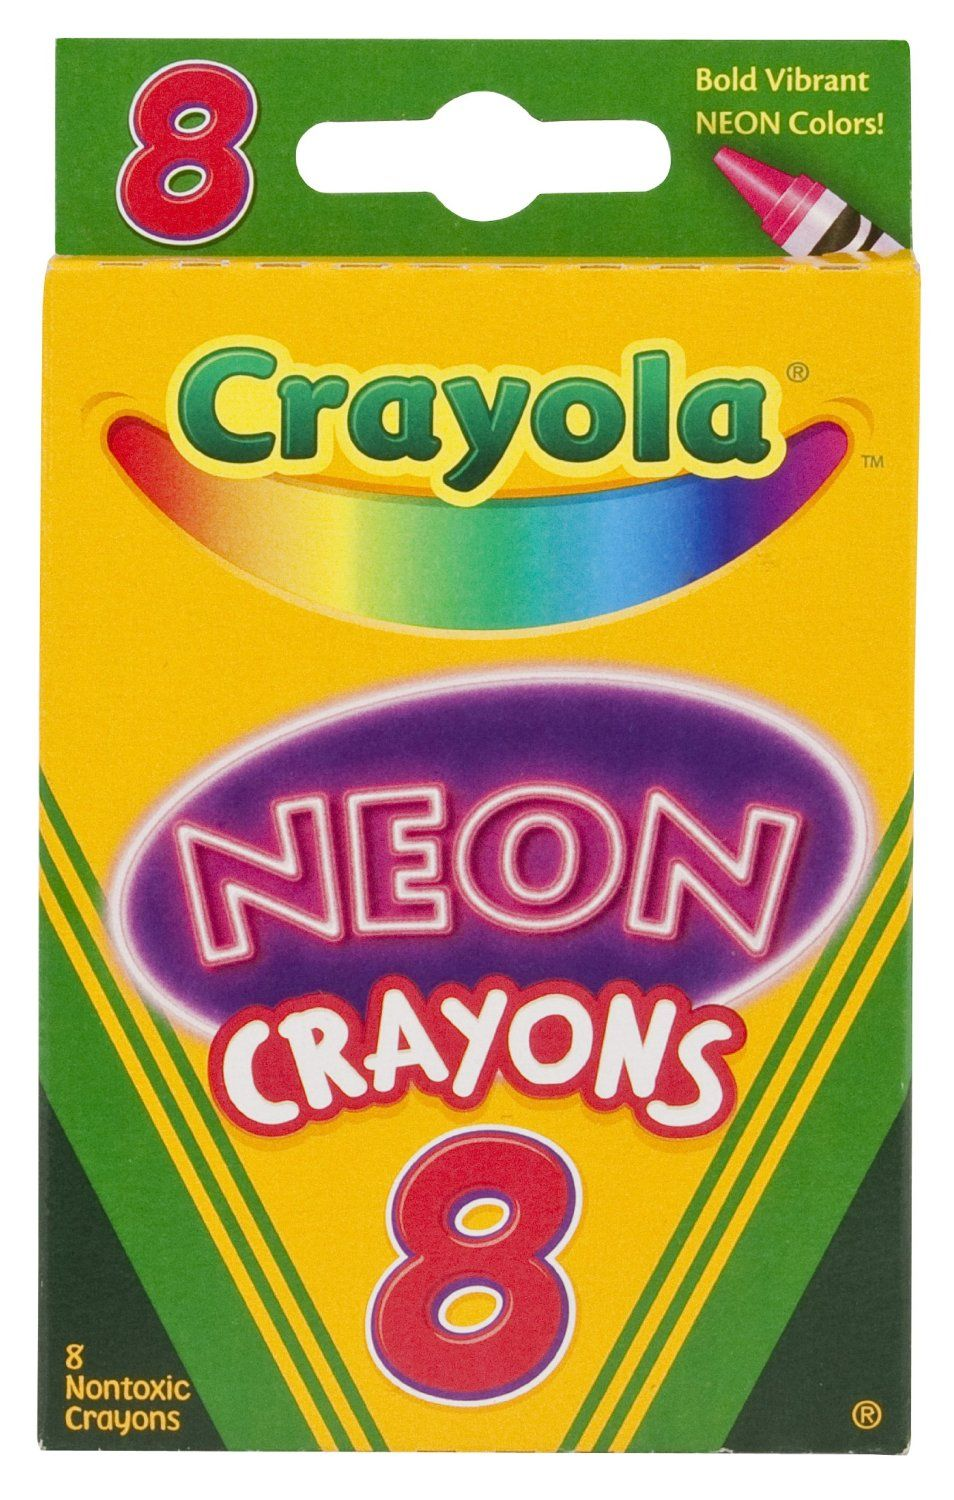 Amazon.com: Crayola Neon Crayons, 8 Count: Toys & Games | packaging ...